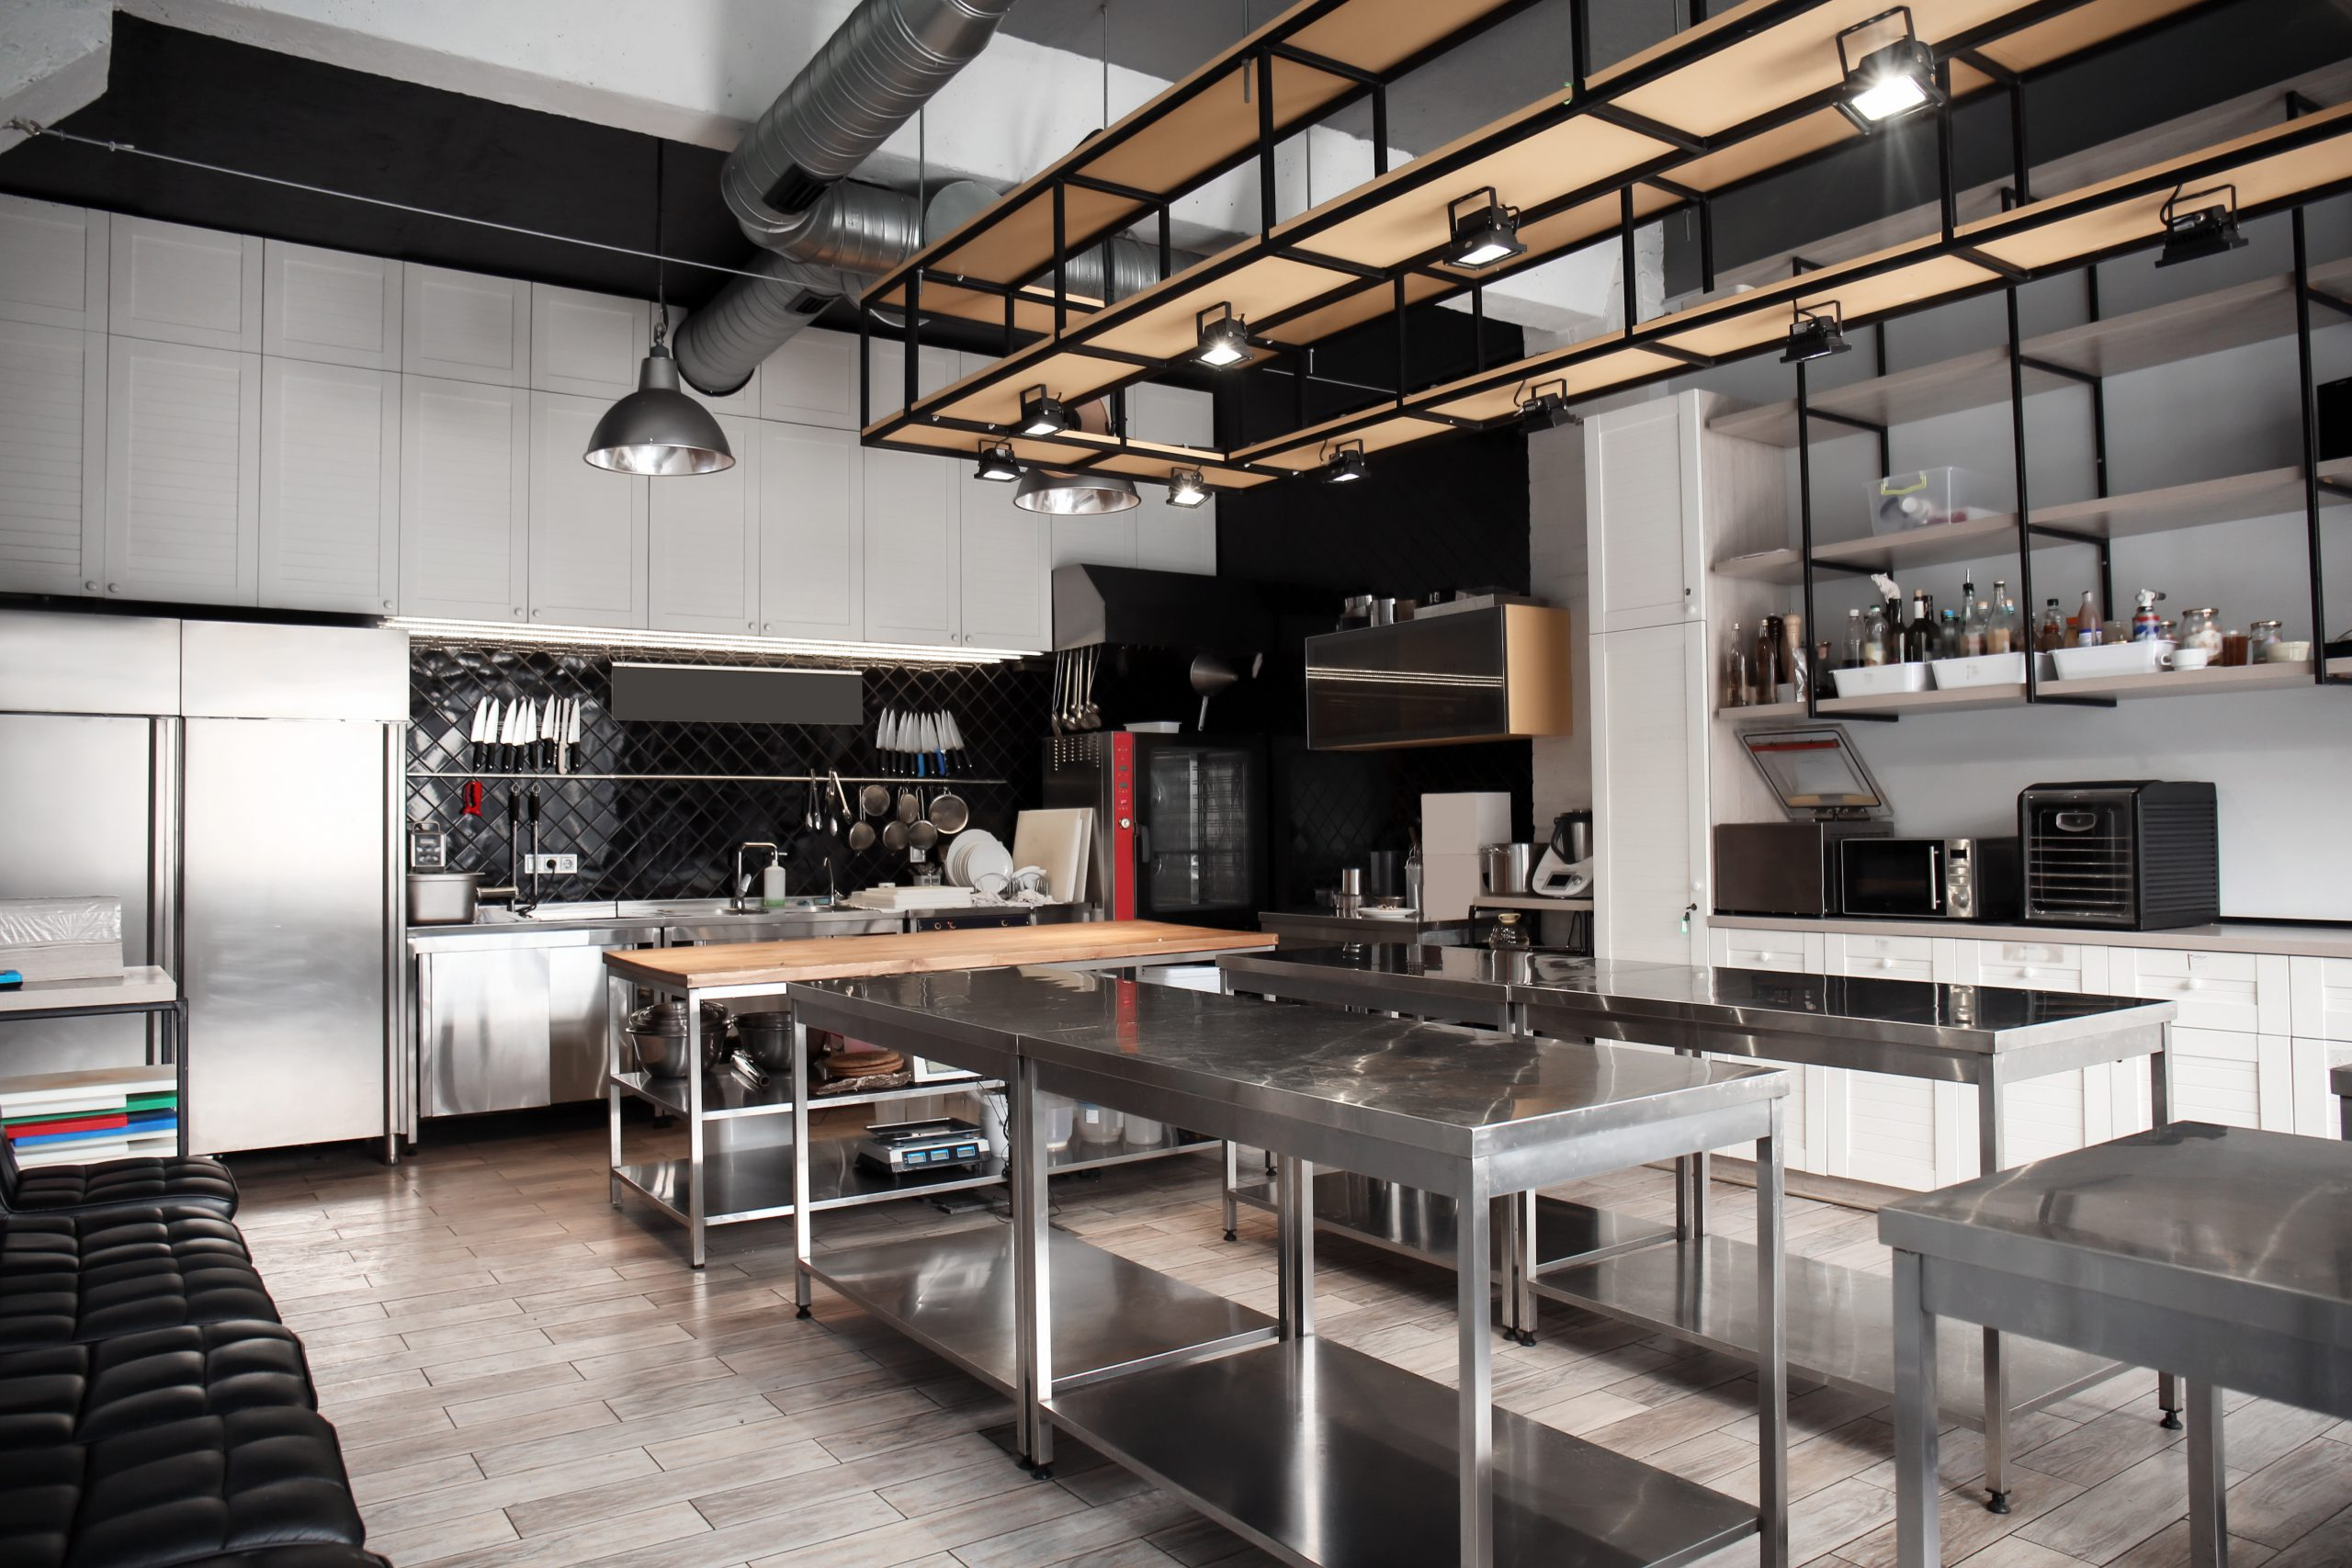 How To Design The Best Restaurant Kitchen Layout Pared